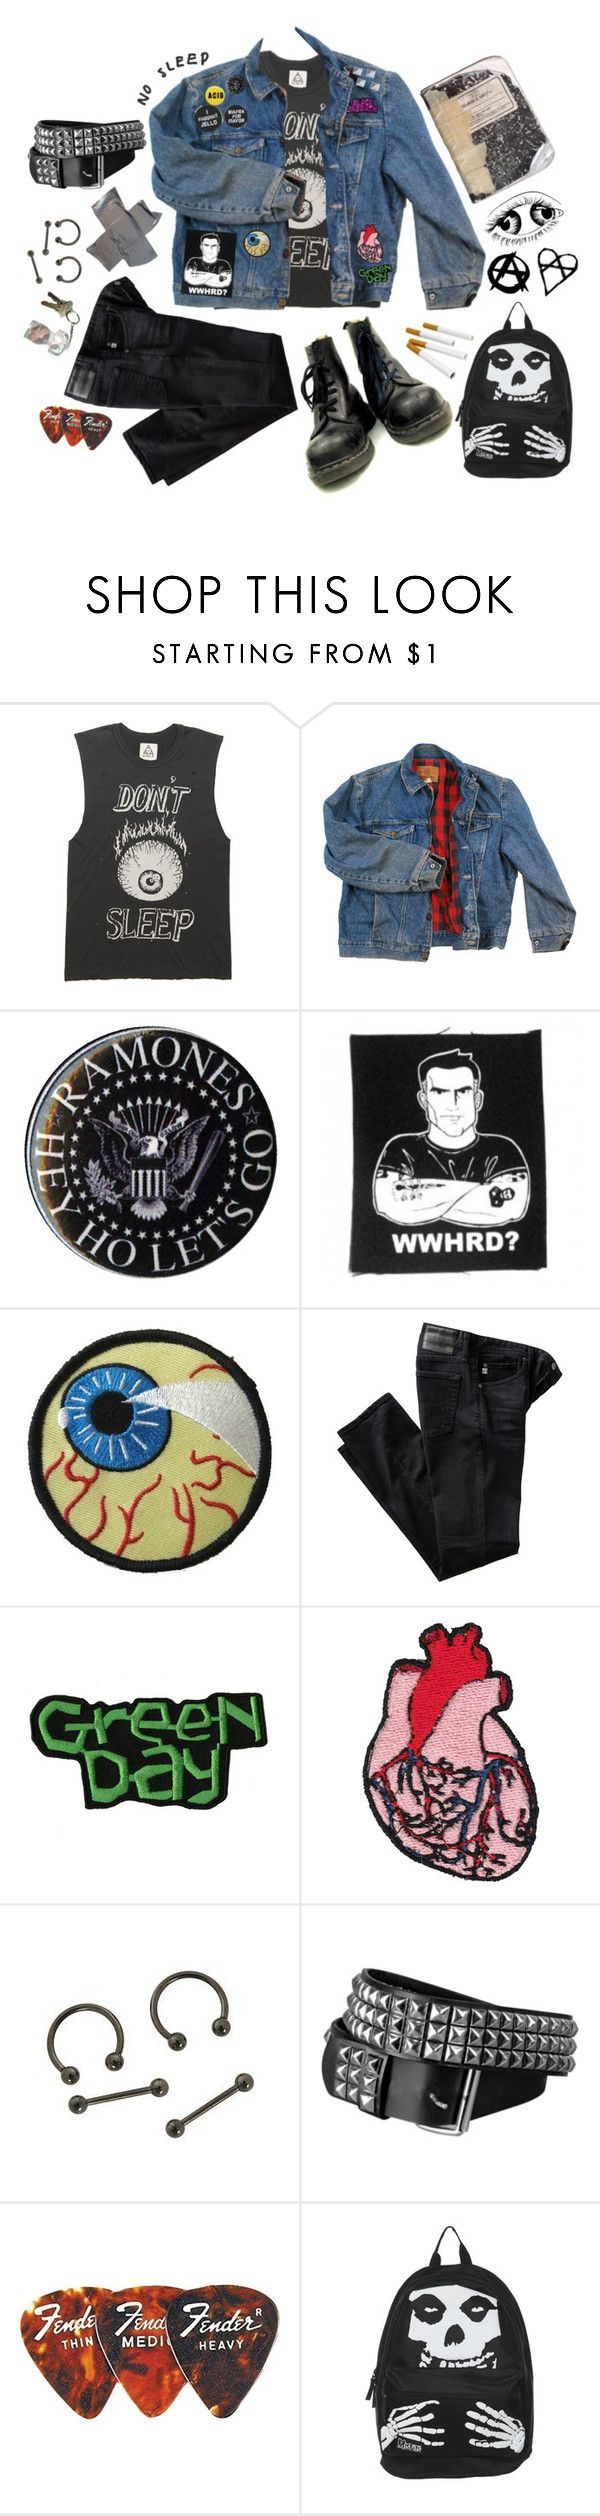 """full metal jackoff // jello biafra & D.O.A."" by trashpunk ❤ liked on Polyvore featuring Wrangler, Dakine, AG Adriano Goldschmied and Strange Days"